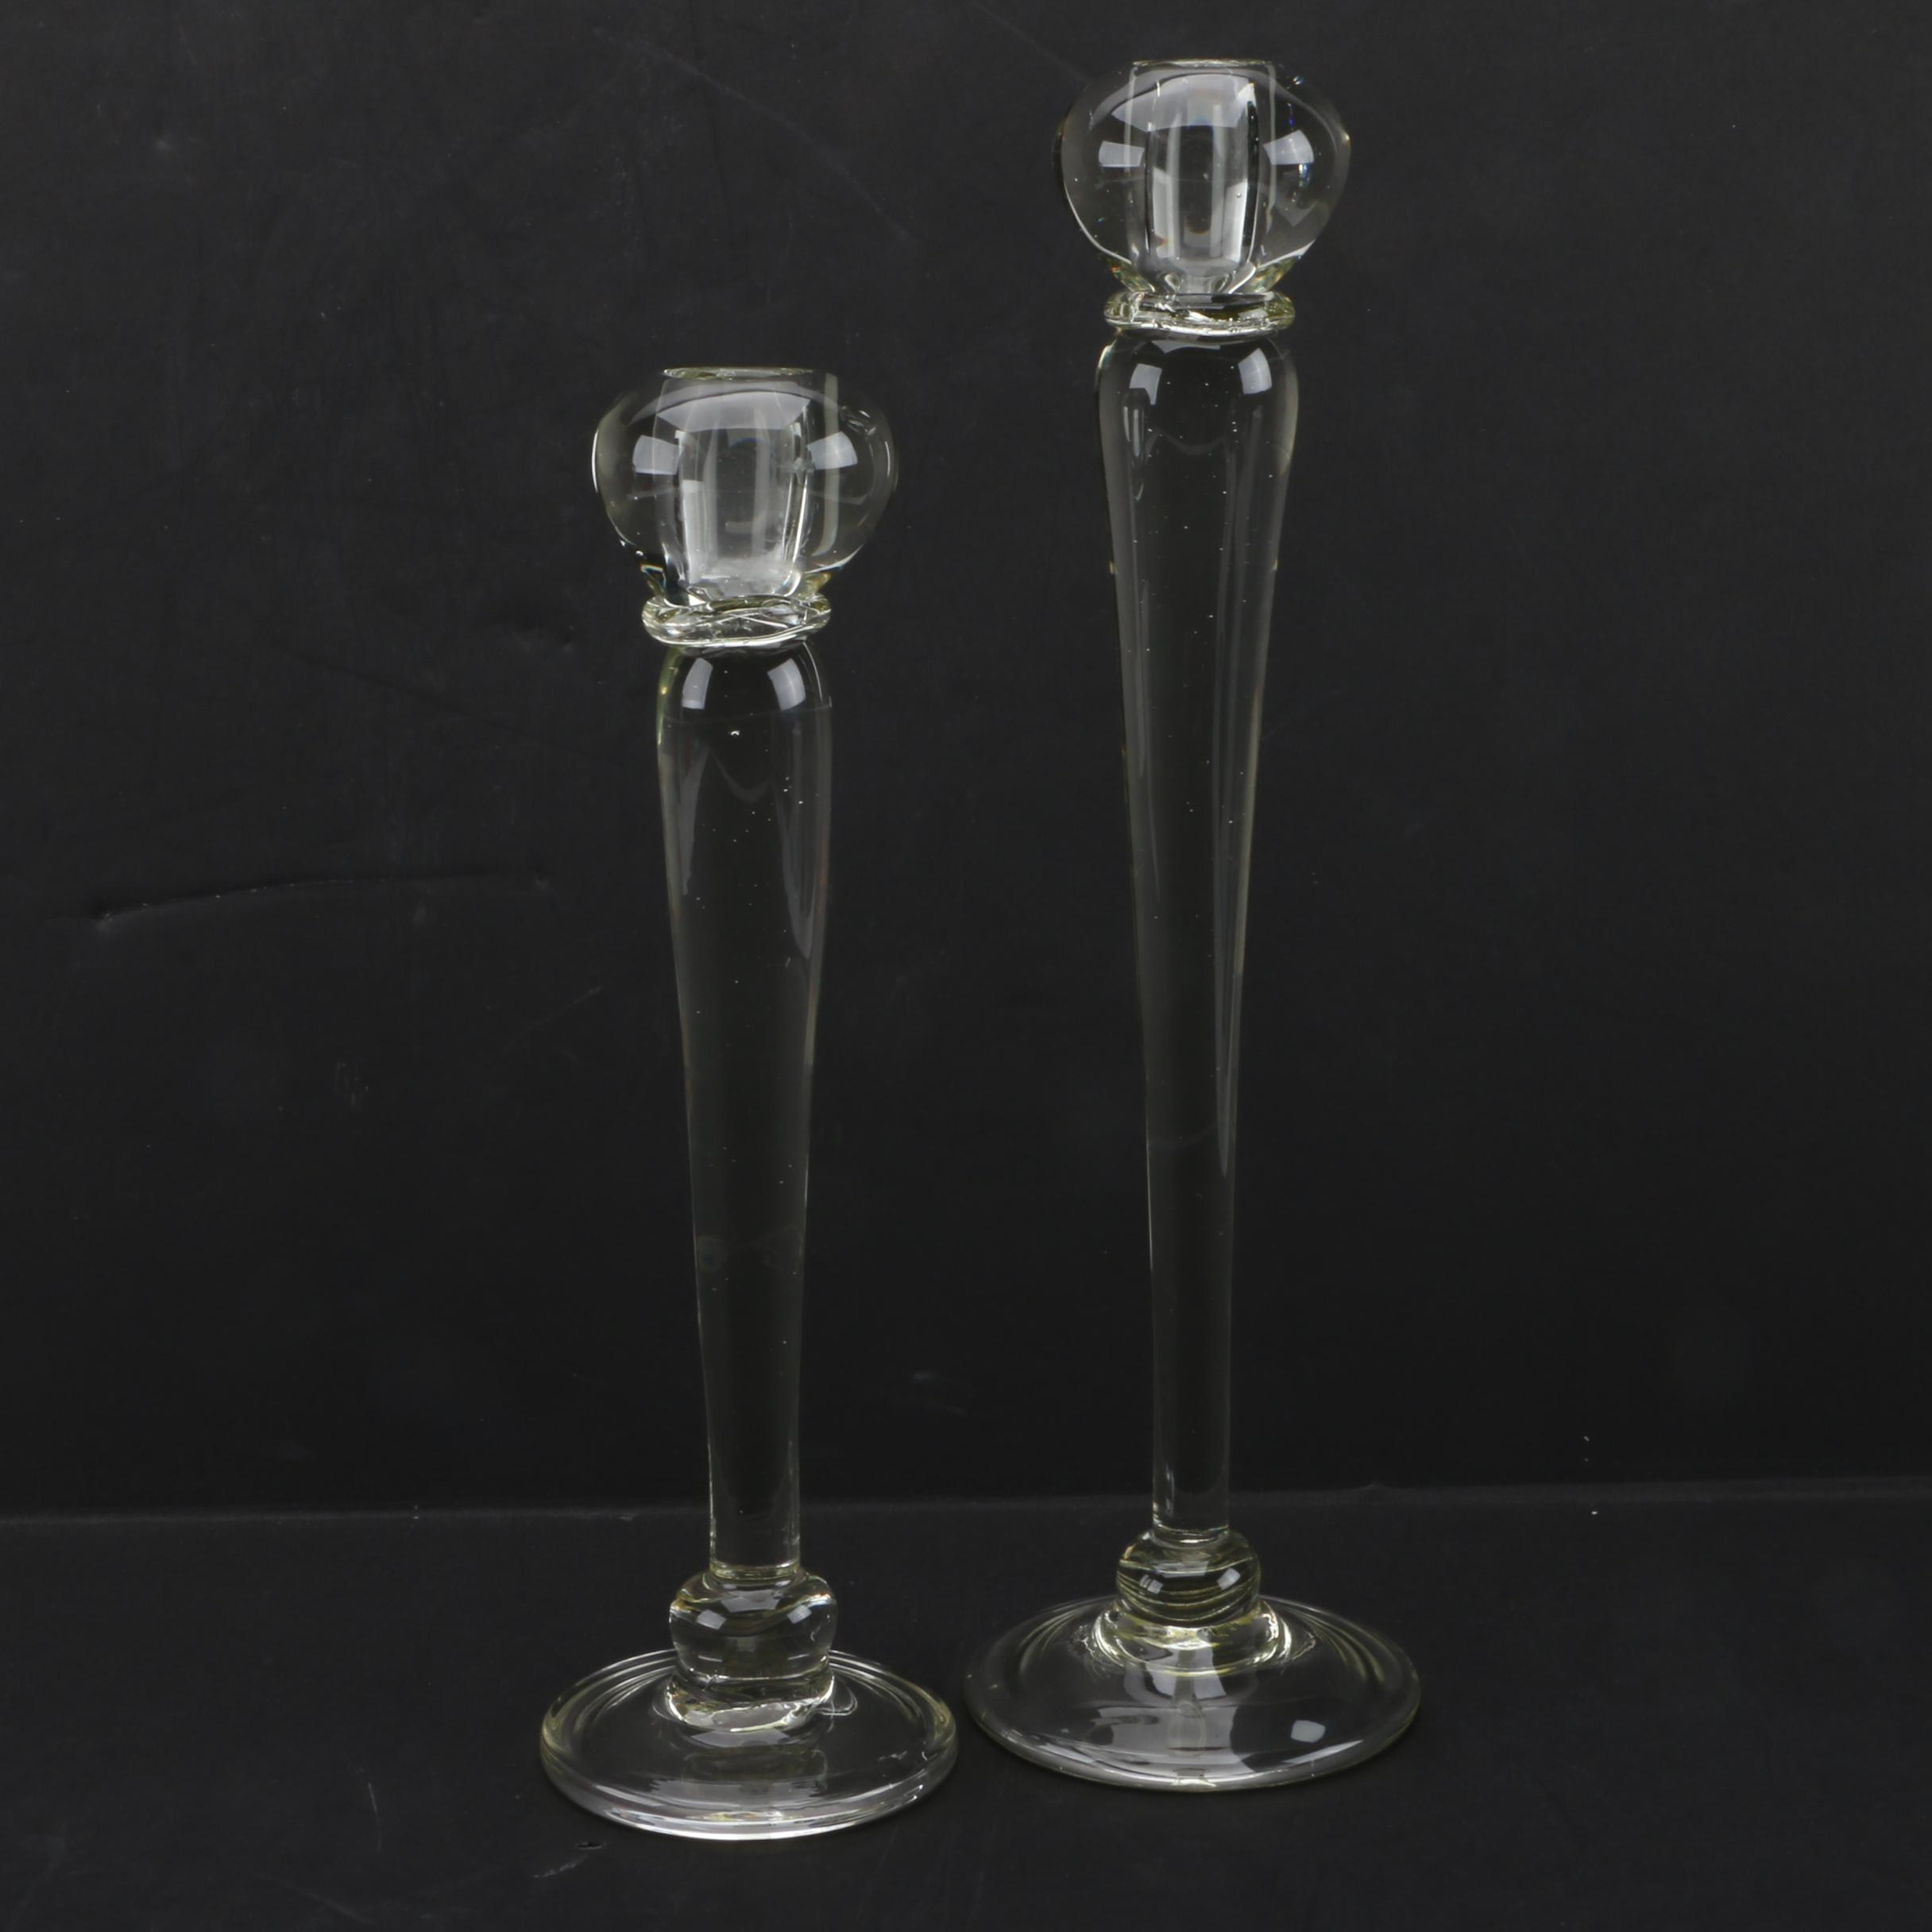 Pair of Contemporary Glass Candlestick Holders